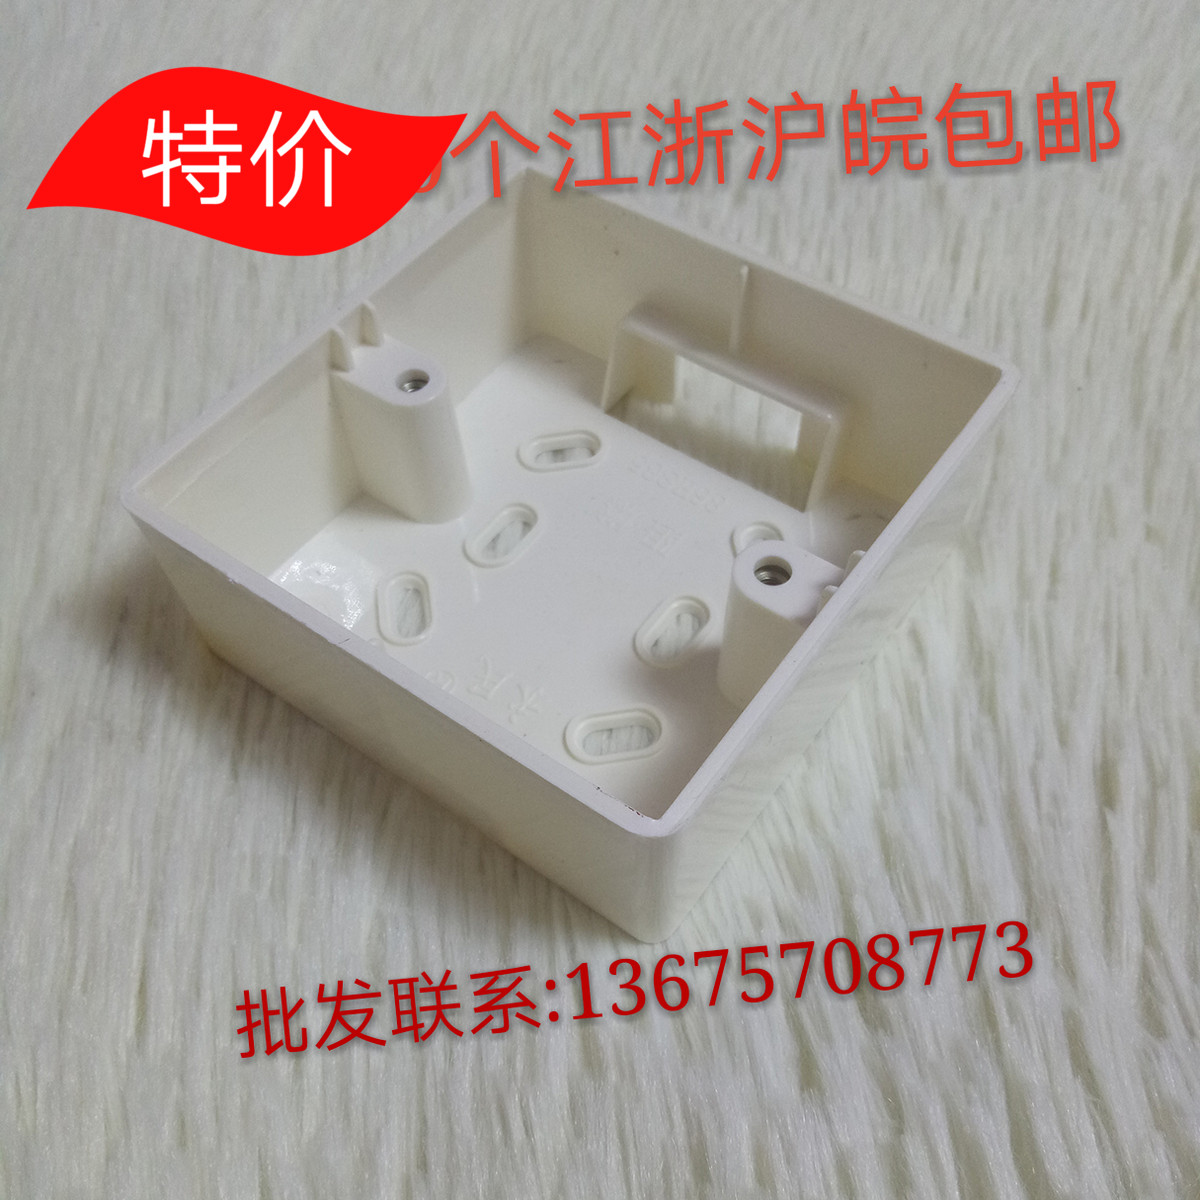 Categorybottom Boxproductnamedelixi Wall Switch Socket Bottom Box Wiring Junction Mounted Type 86 Pvc Ming Line